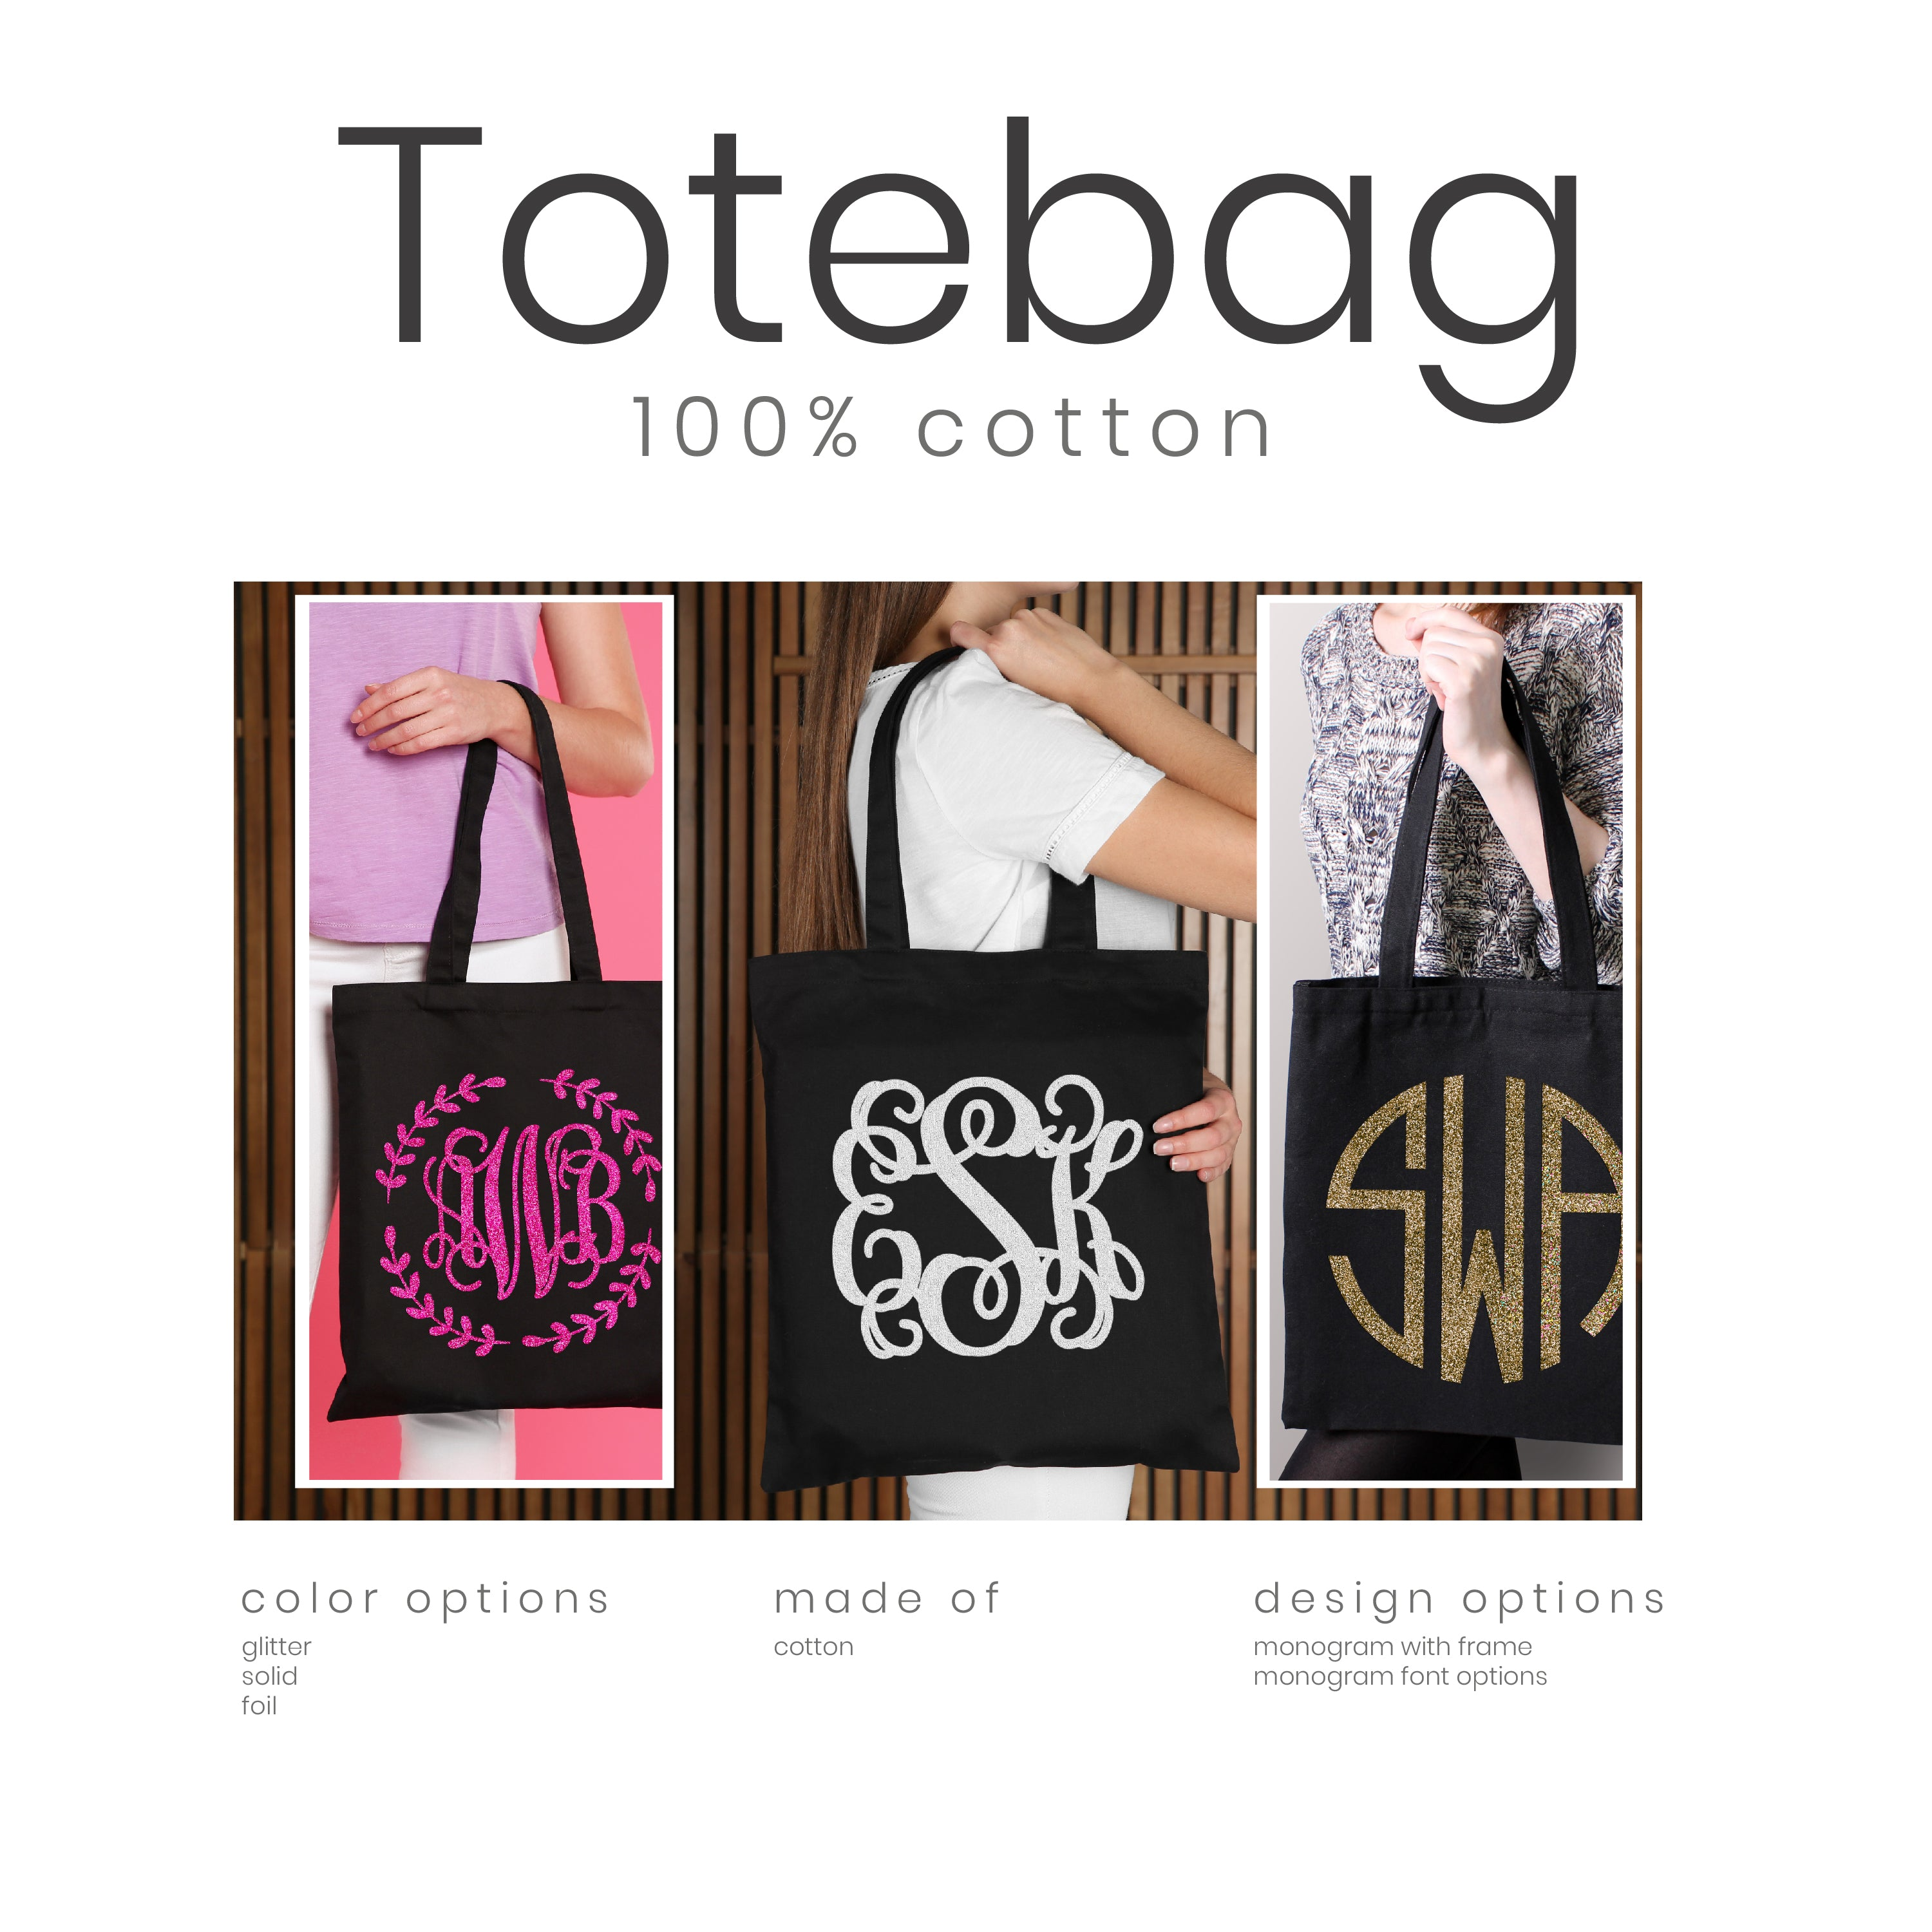 Custom majestic zebra tote shopping bag personalised with any text and gift message \u2013 ref tof59